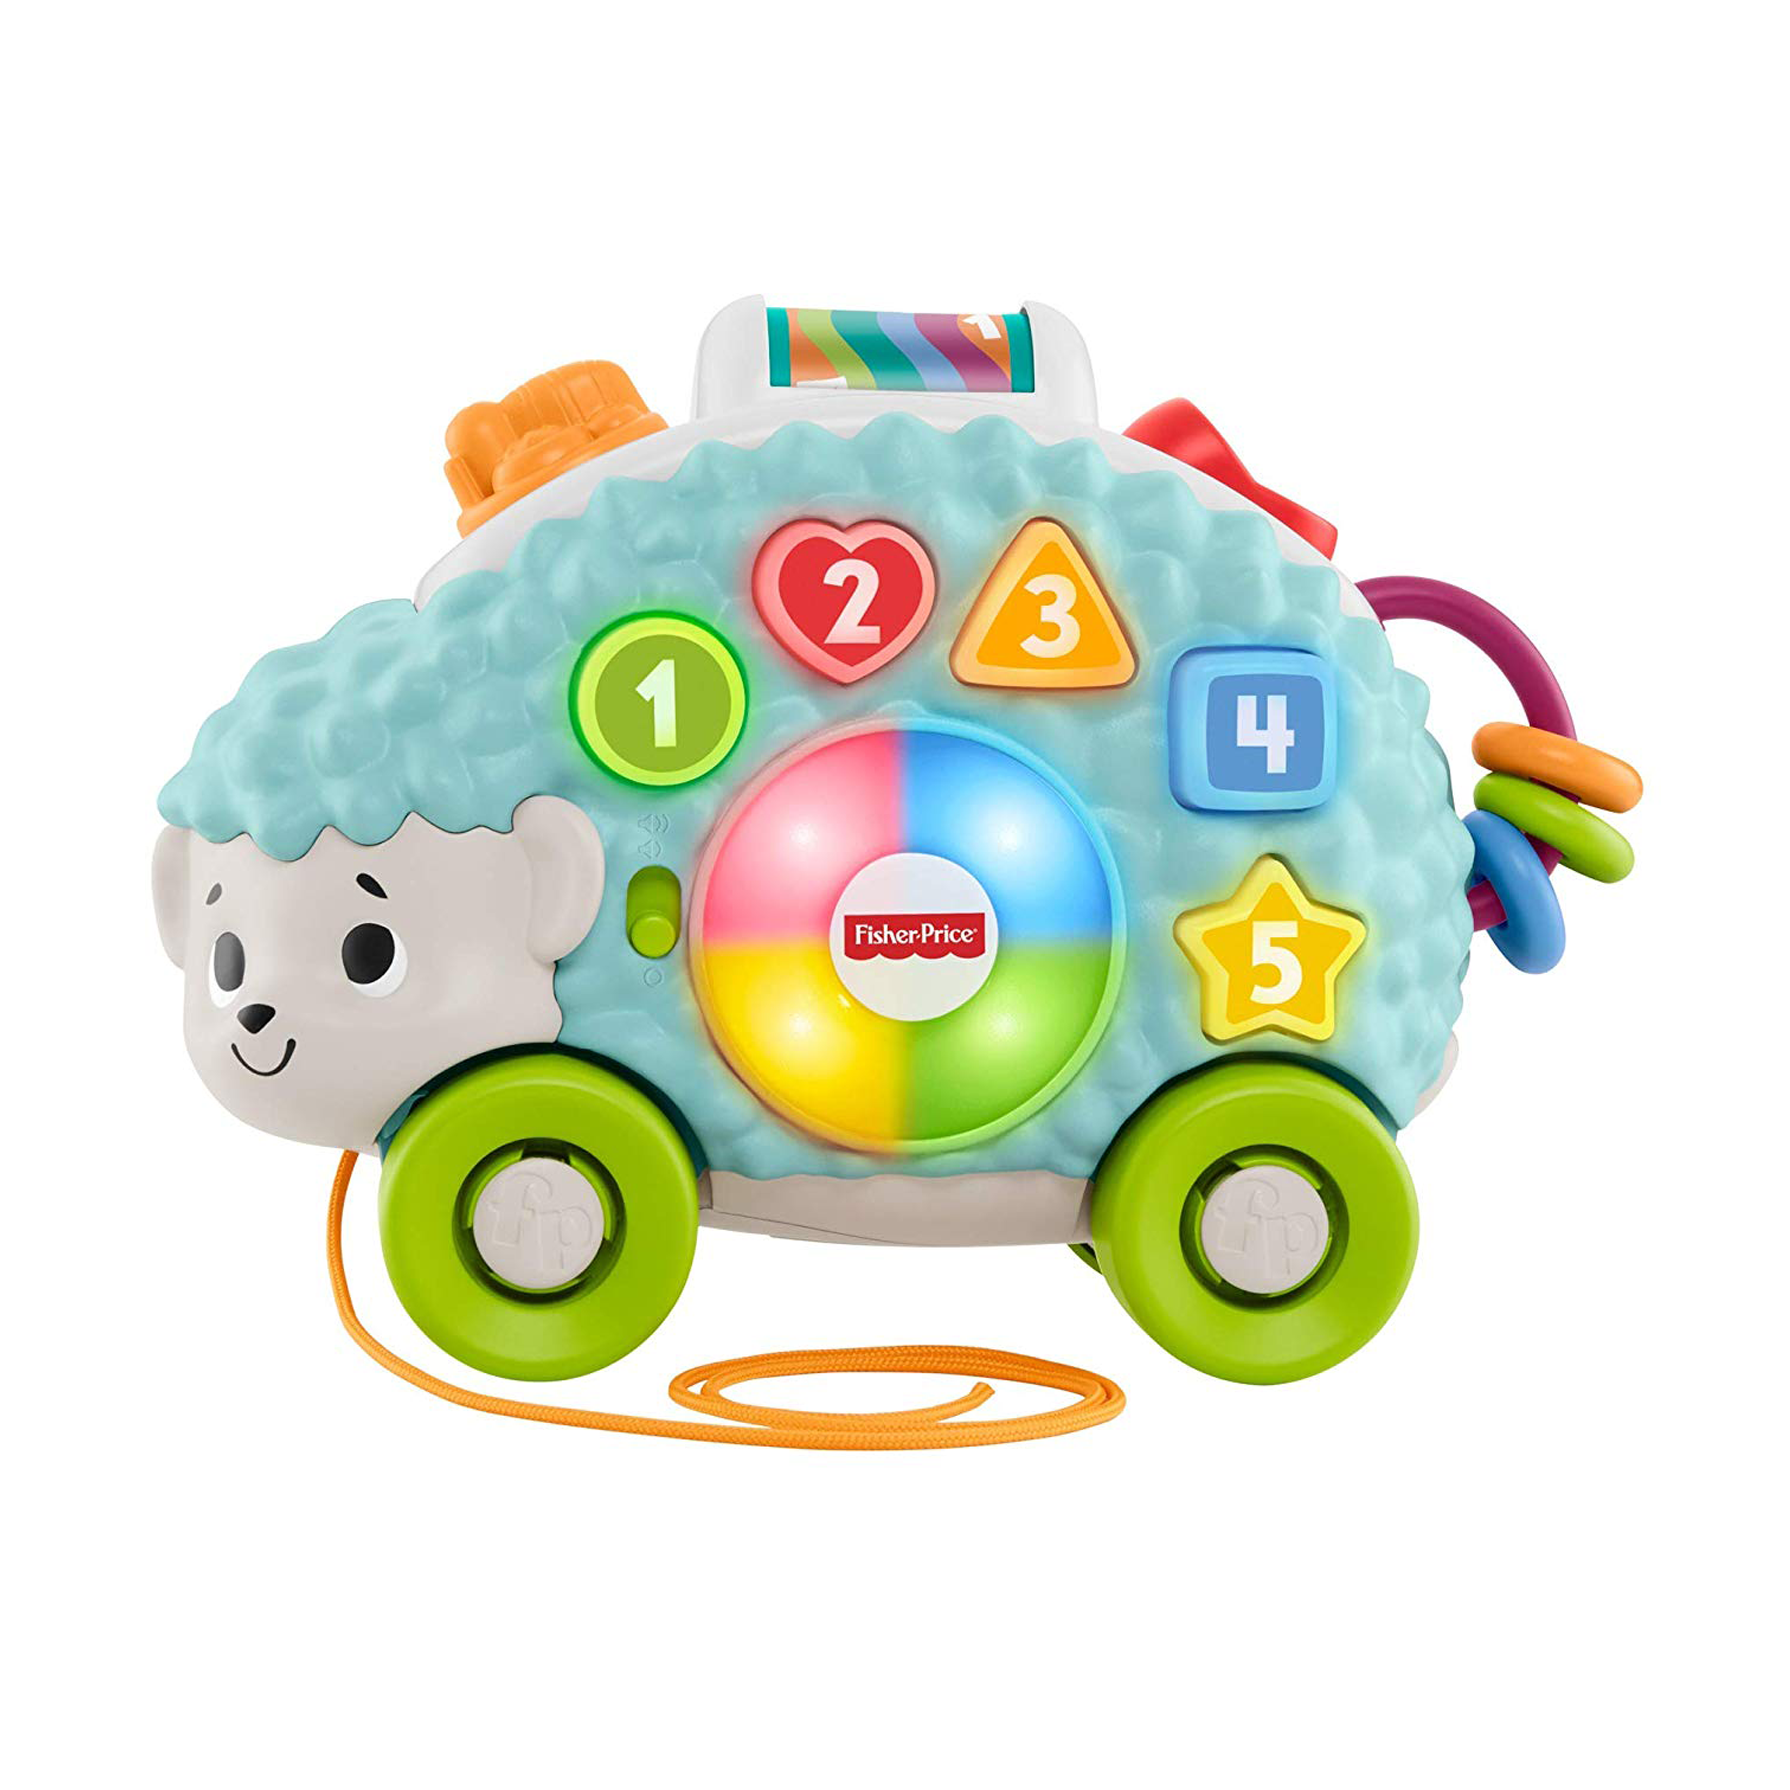 Fisher-Price Linkimals Erizo formitas felices